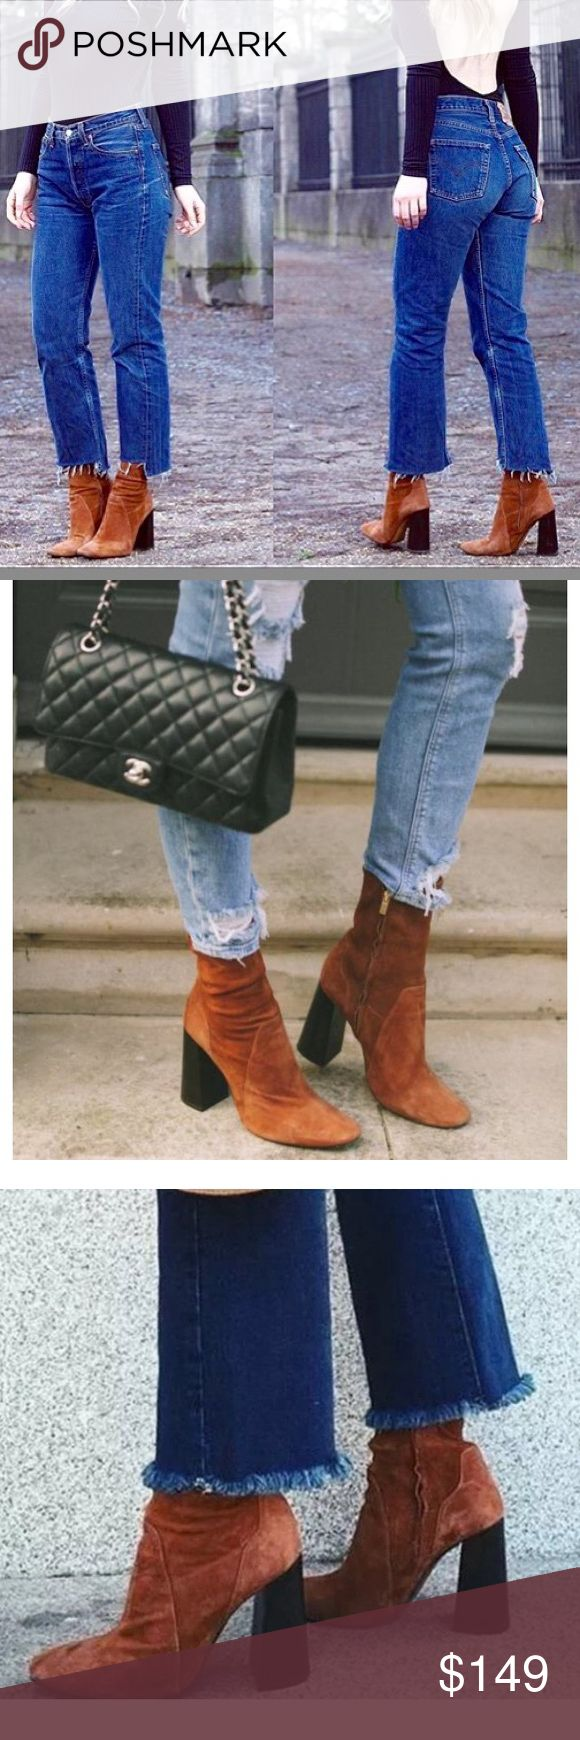 ZARA HIGH HEEL PREMIUM LEATHER SOCK BOOT BRAND NEW ZARA HIGH HEEL PREMIUM LEATHER SOCK BOOT BRAND NEW. GIVENCHY INSPIRED THIS SEASONS MUST HAVE RETRO VIBE ANKLE BOOTS. BLOGGERS FAV. Zara Shoes Ankle Boots & Booties